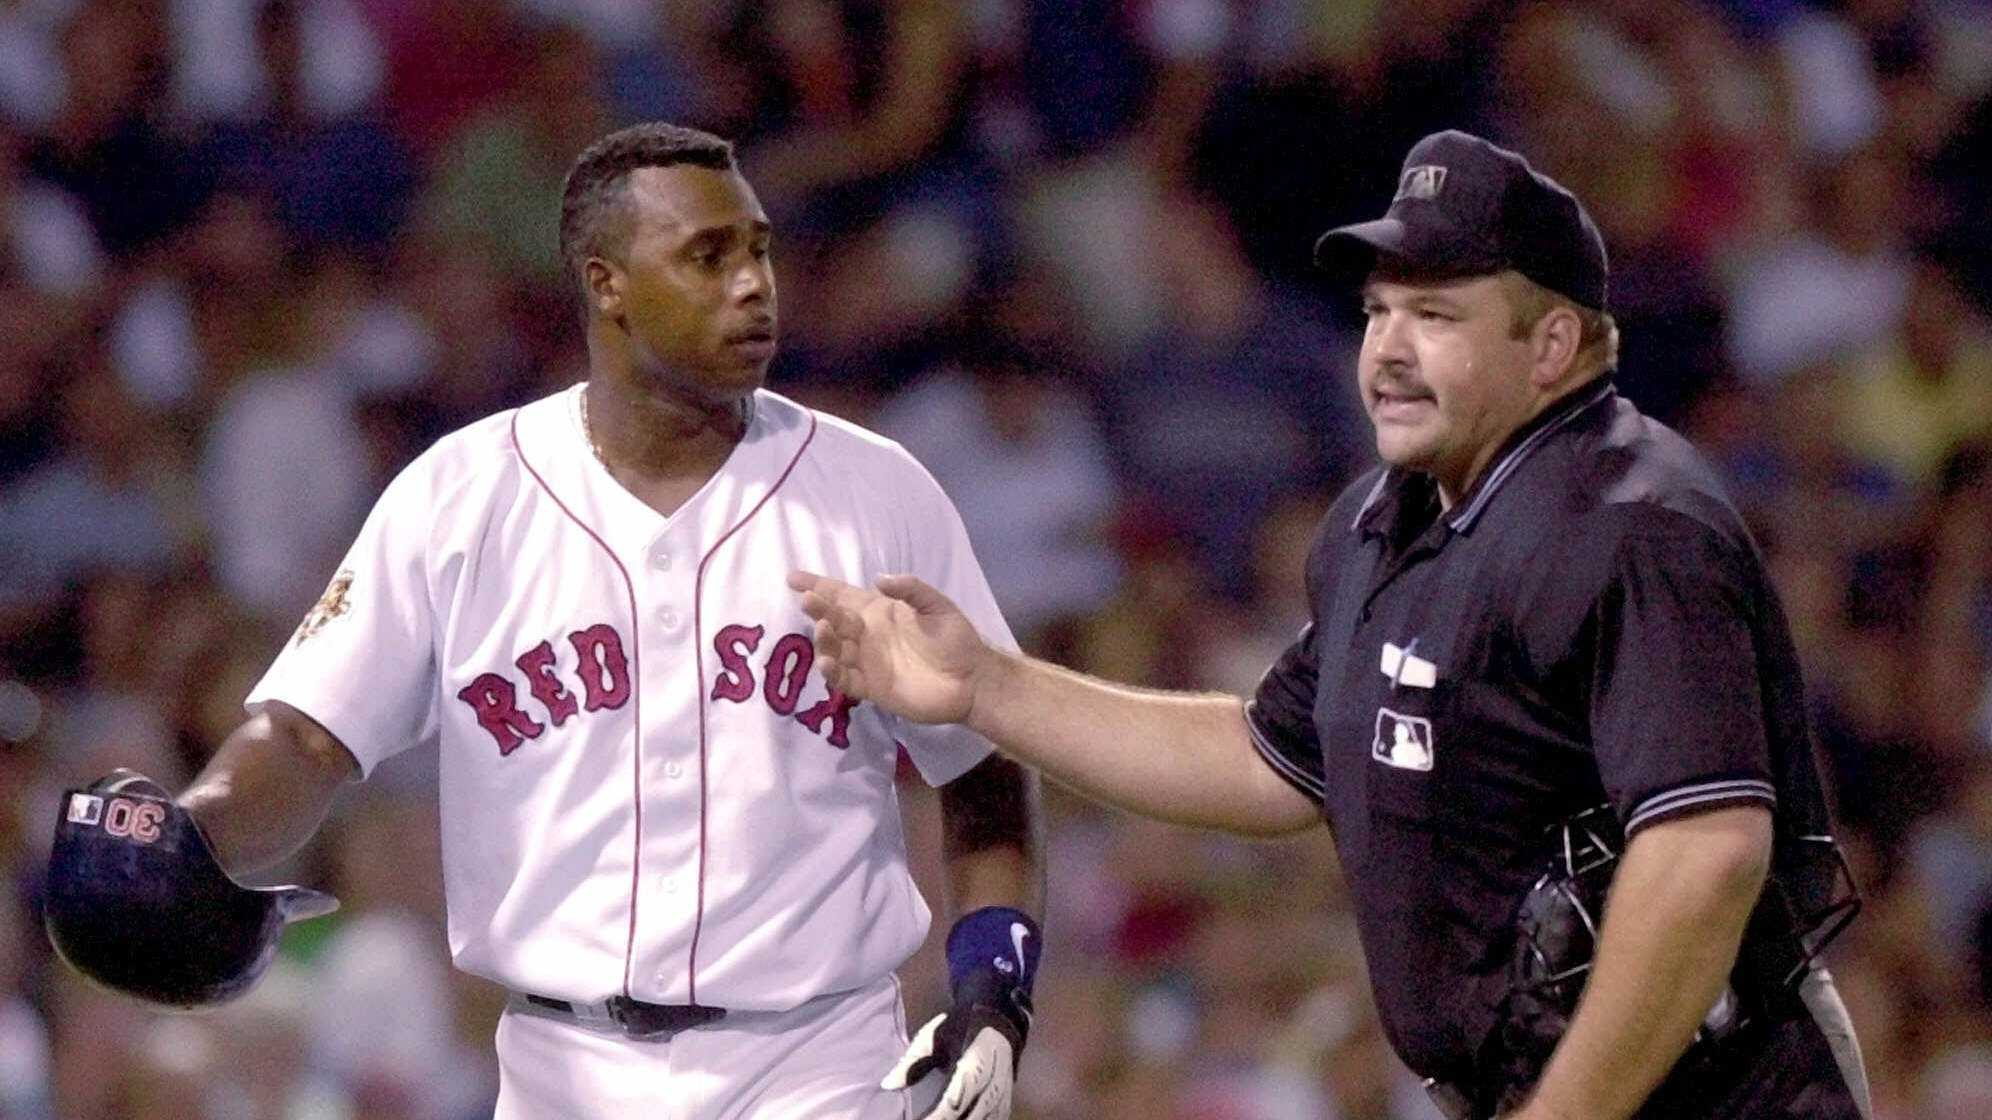 Boston Red Sox batter Jose Offerman is ejected by home plate umpire Wally Bell after arguing a strikeout in the sixth inning against the Seattle Mariners at Fenway Park in Boston, Thursday Aug. 16, 2001.